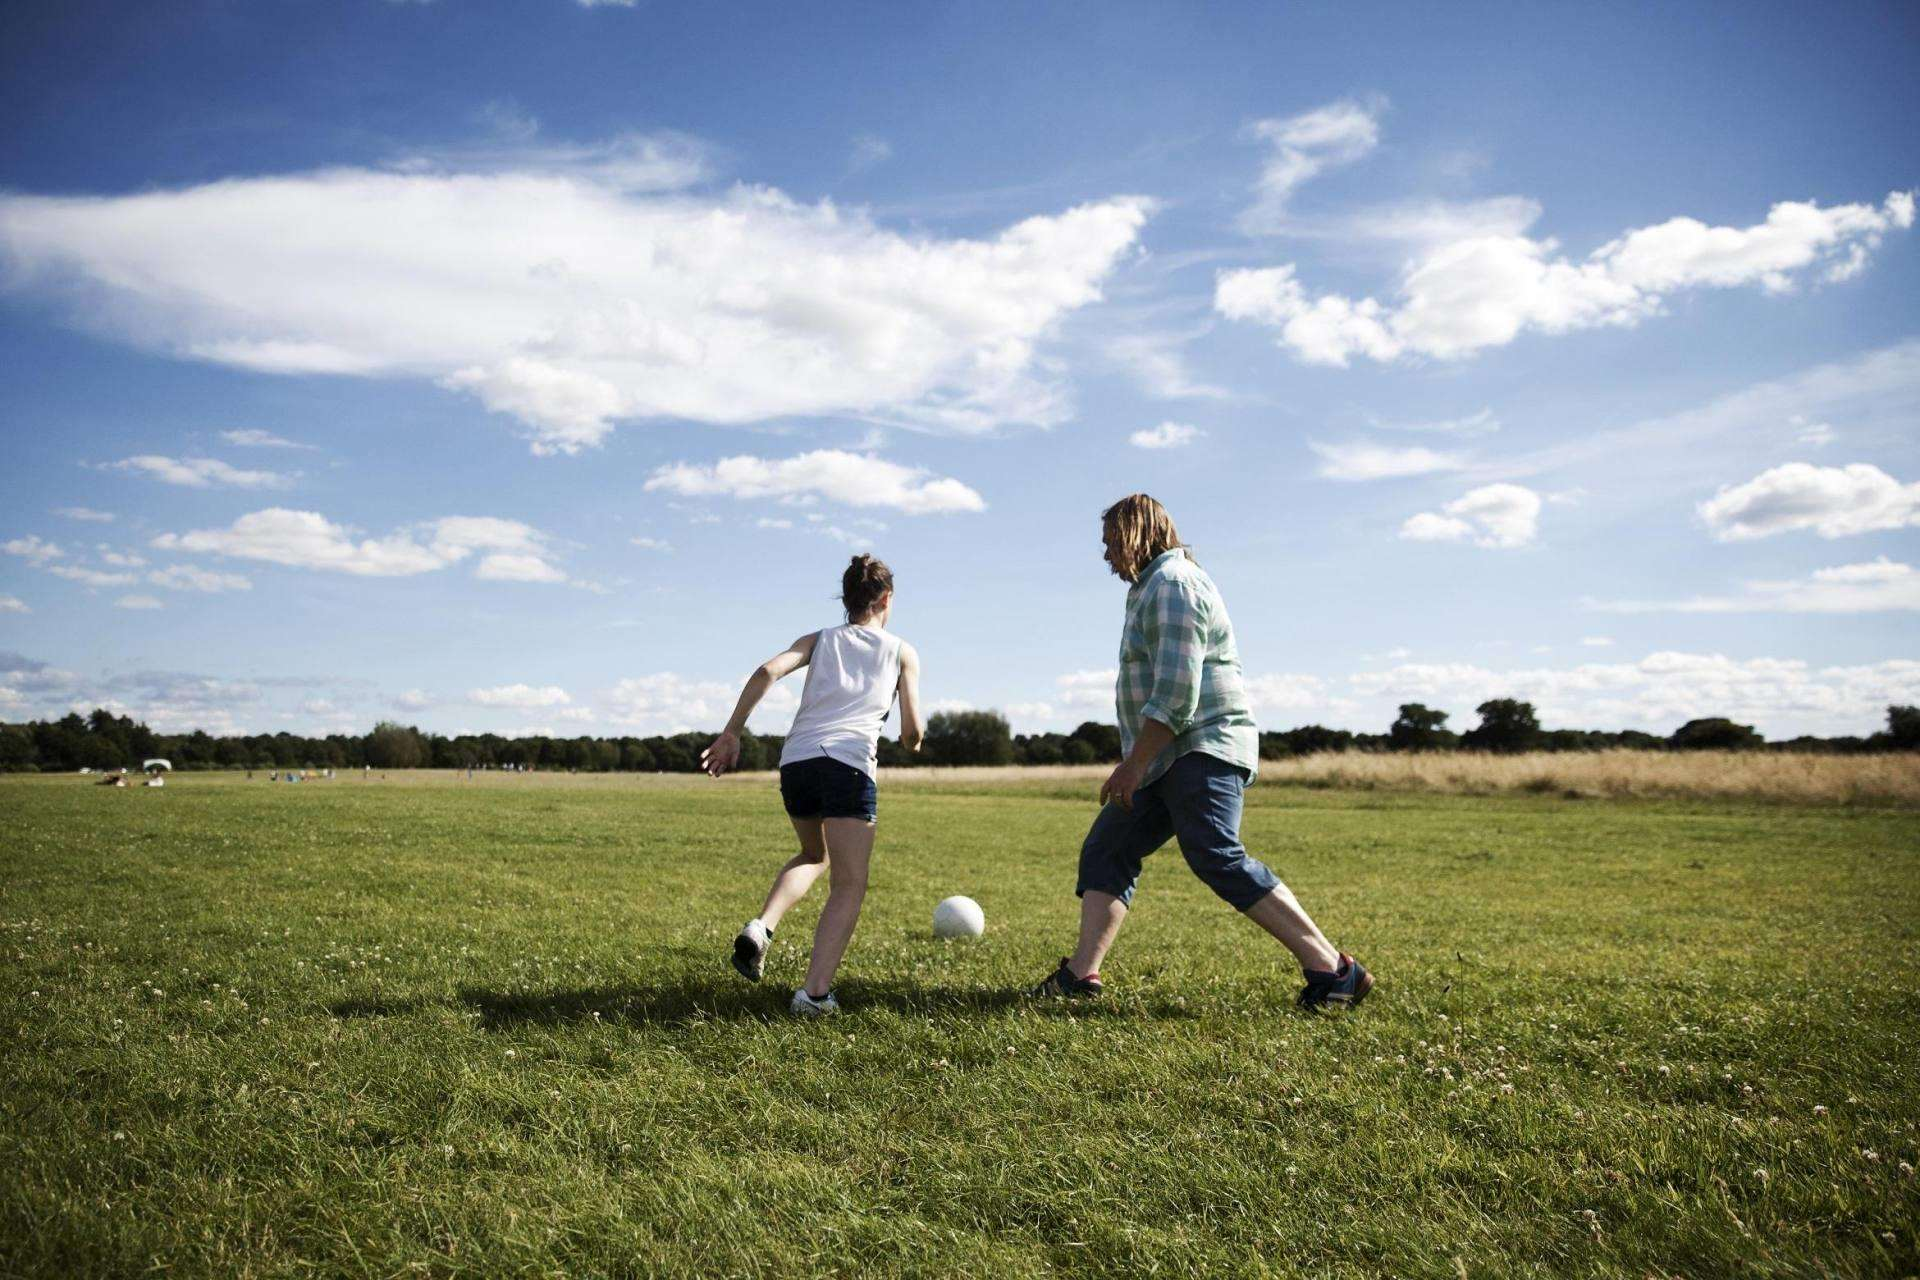 The Dad helped his daughter escape her Tourettes through women's football, Daisy Kenny Park%, lifestyle%